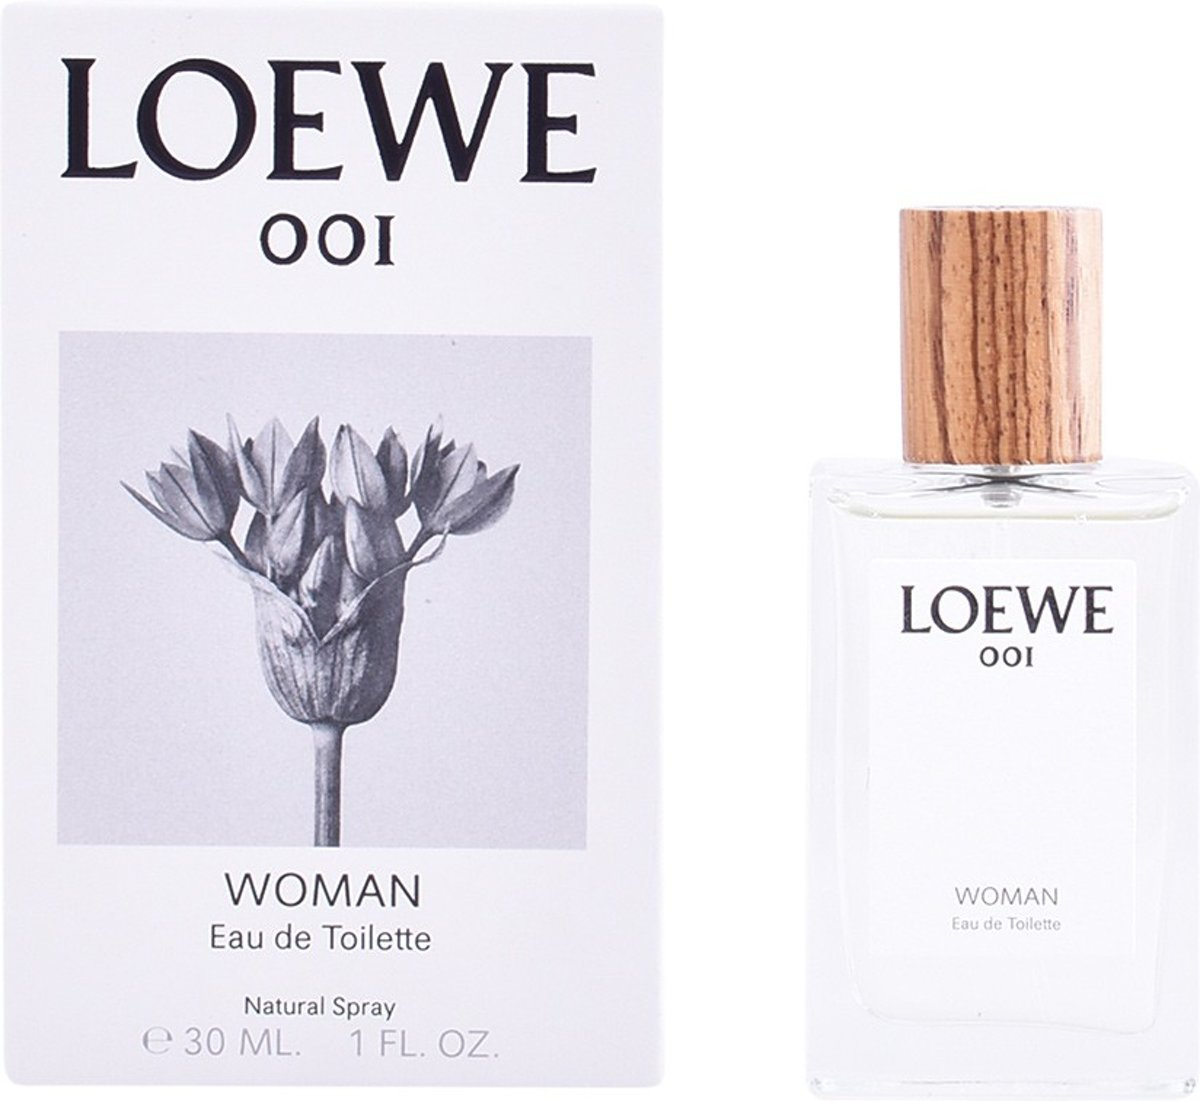 MULTI BUNDEL 2 stuks LOEWE 001 WOMAN Eau de Toilette Spray 30 ml